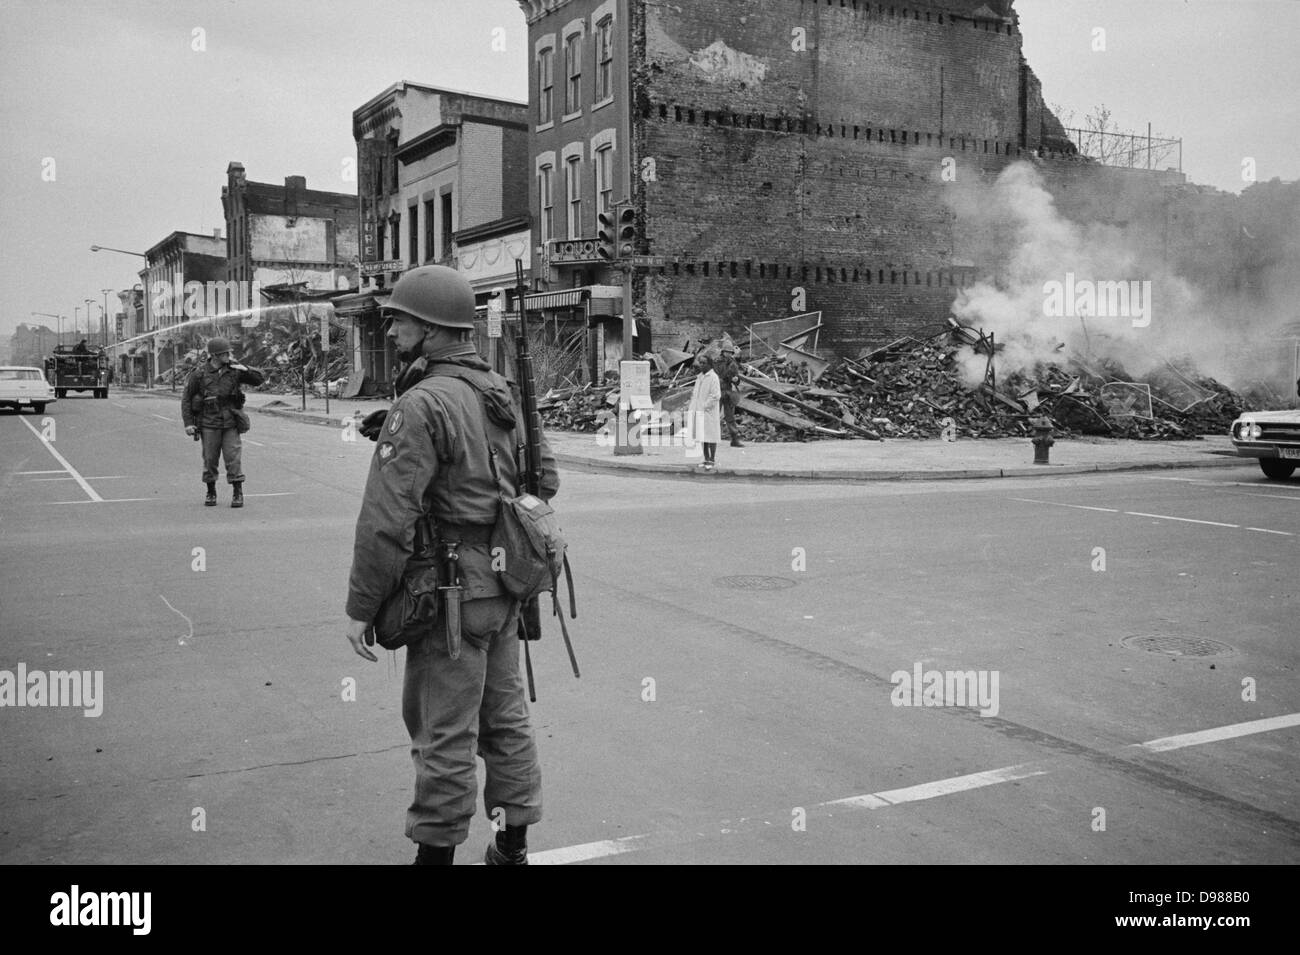 Soldier standing guard in a Washington, D.C., street with the ruins of buildings that were destroyed during the - Stock Image